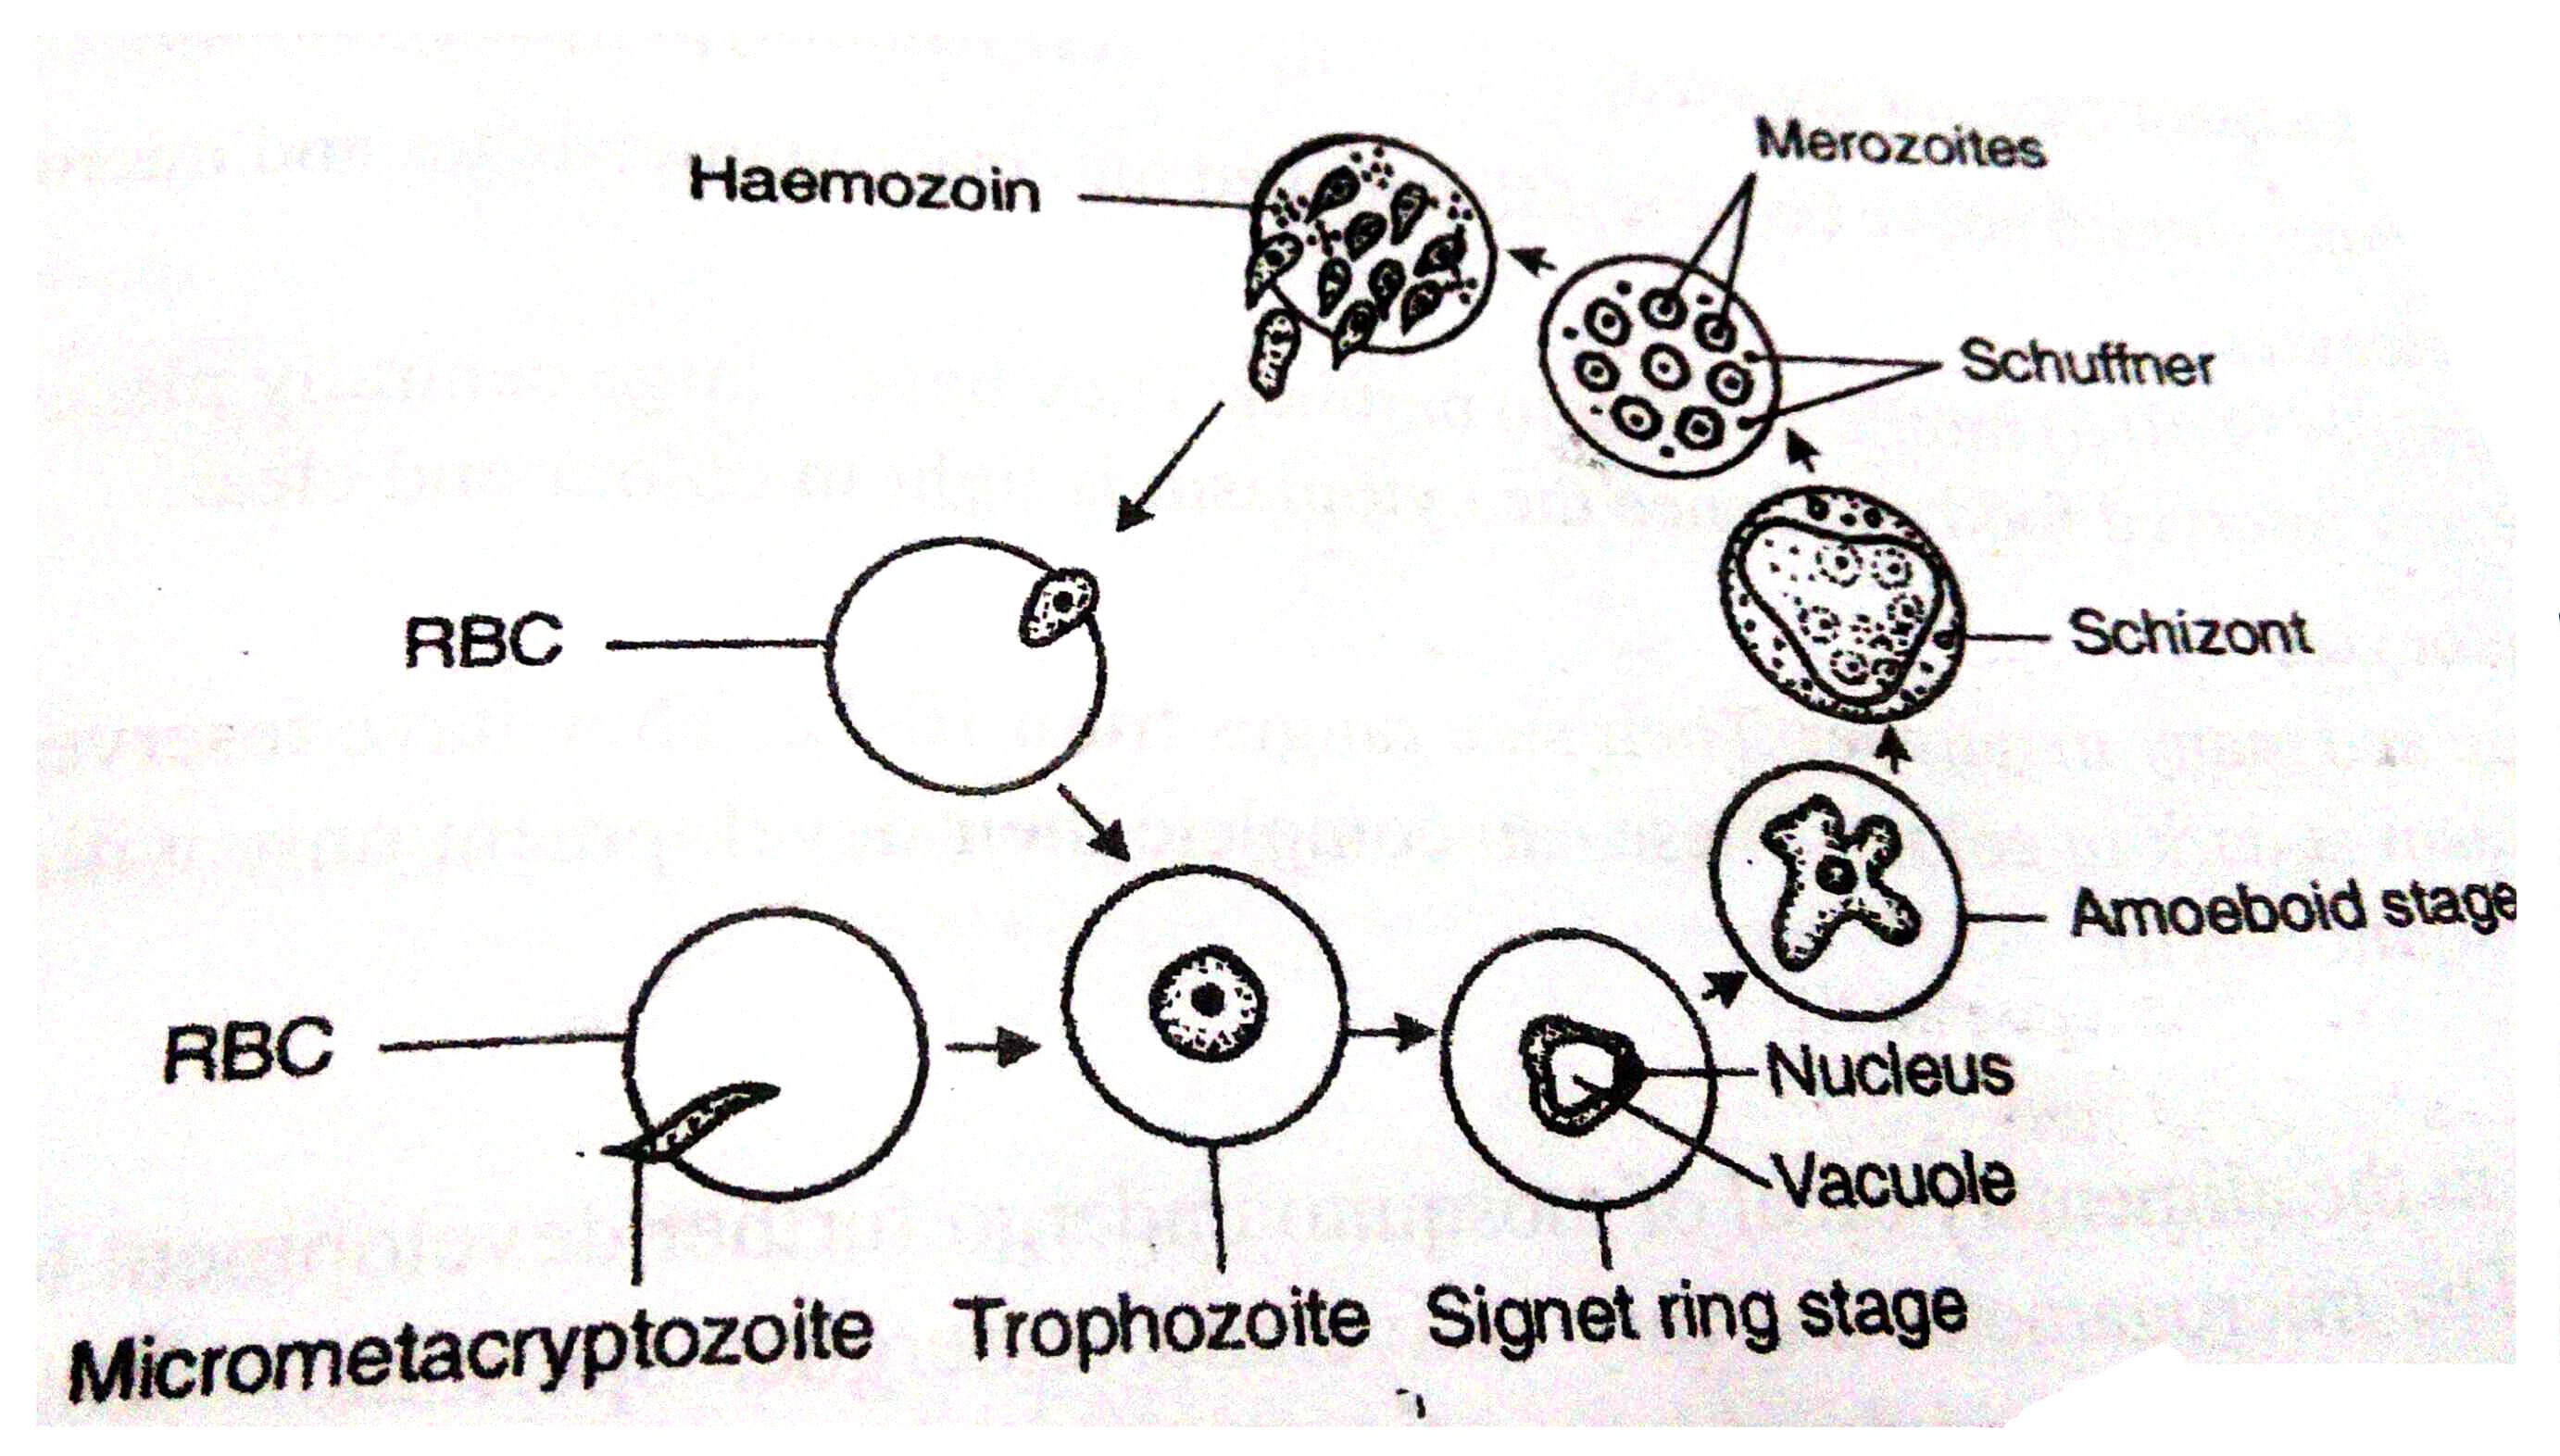 Lifecycle Of Plasmodium